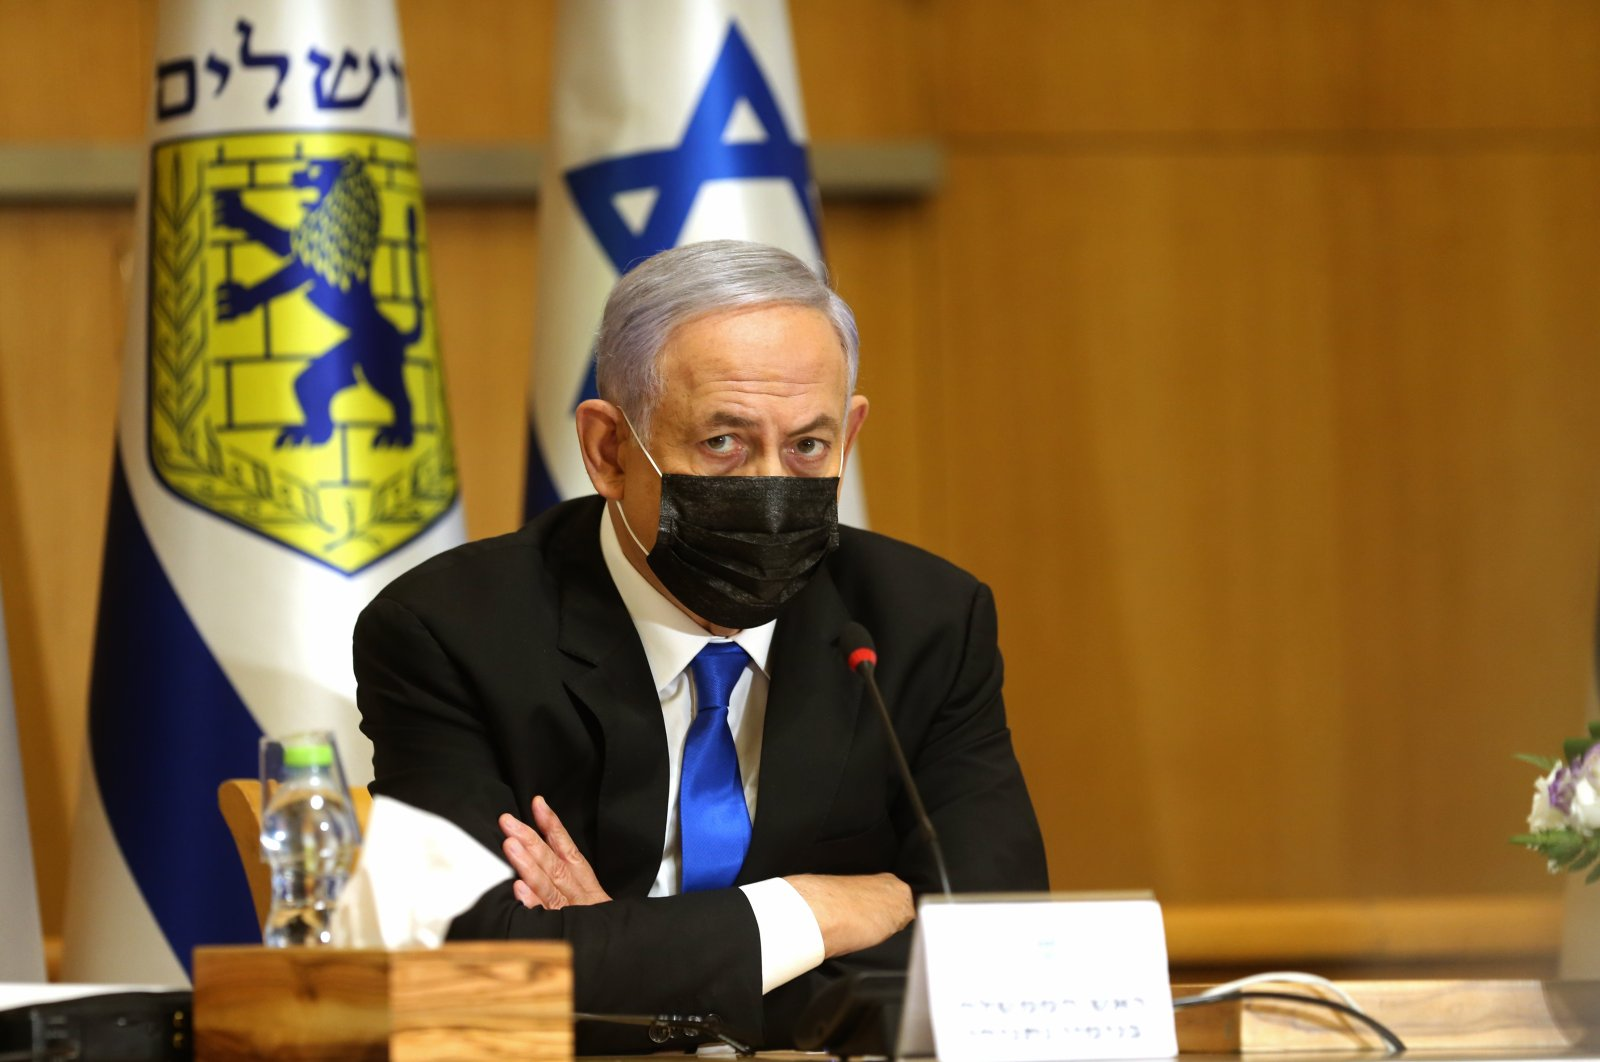 Israeli Prime Minister Benjamin Netanyahu attends a special Cabinet meeting on the occasion of Jerusalem Day, at the Jerusalem Municipality building, in Jerusalem, Sunday, May 9, 2021.  (AP Photo)